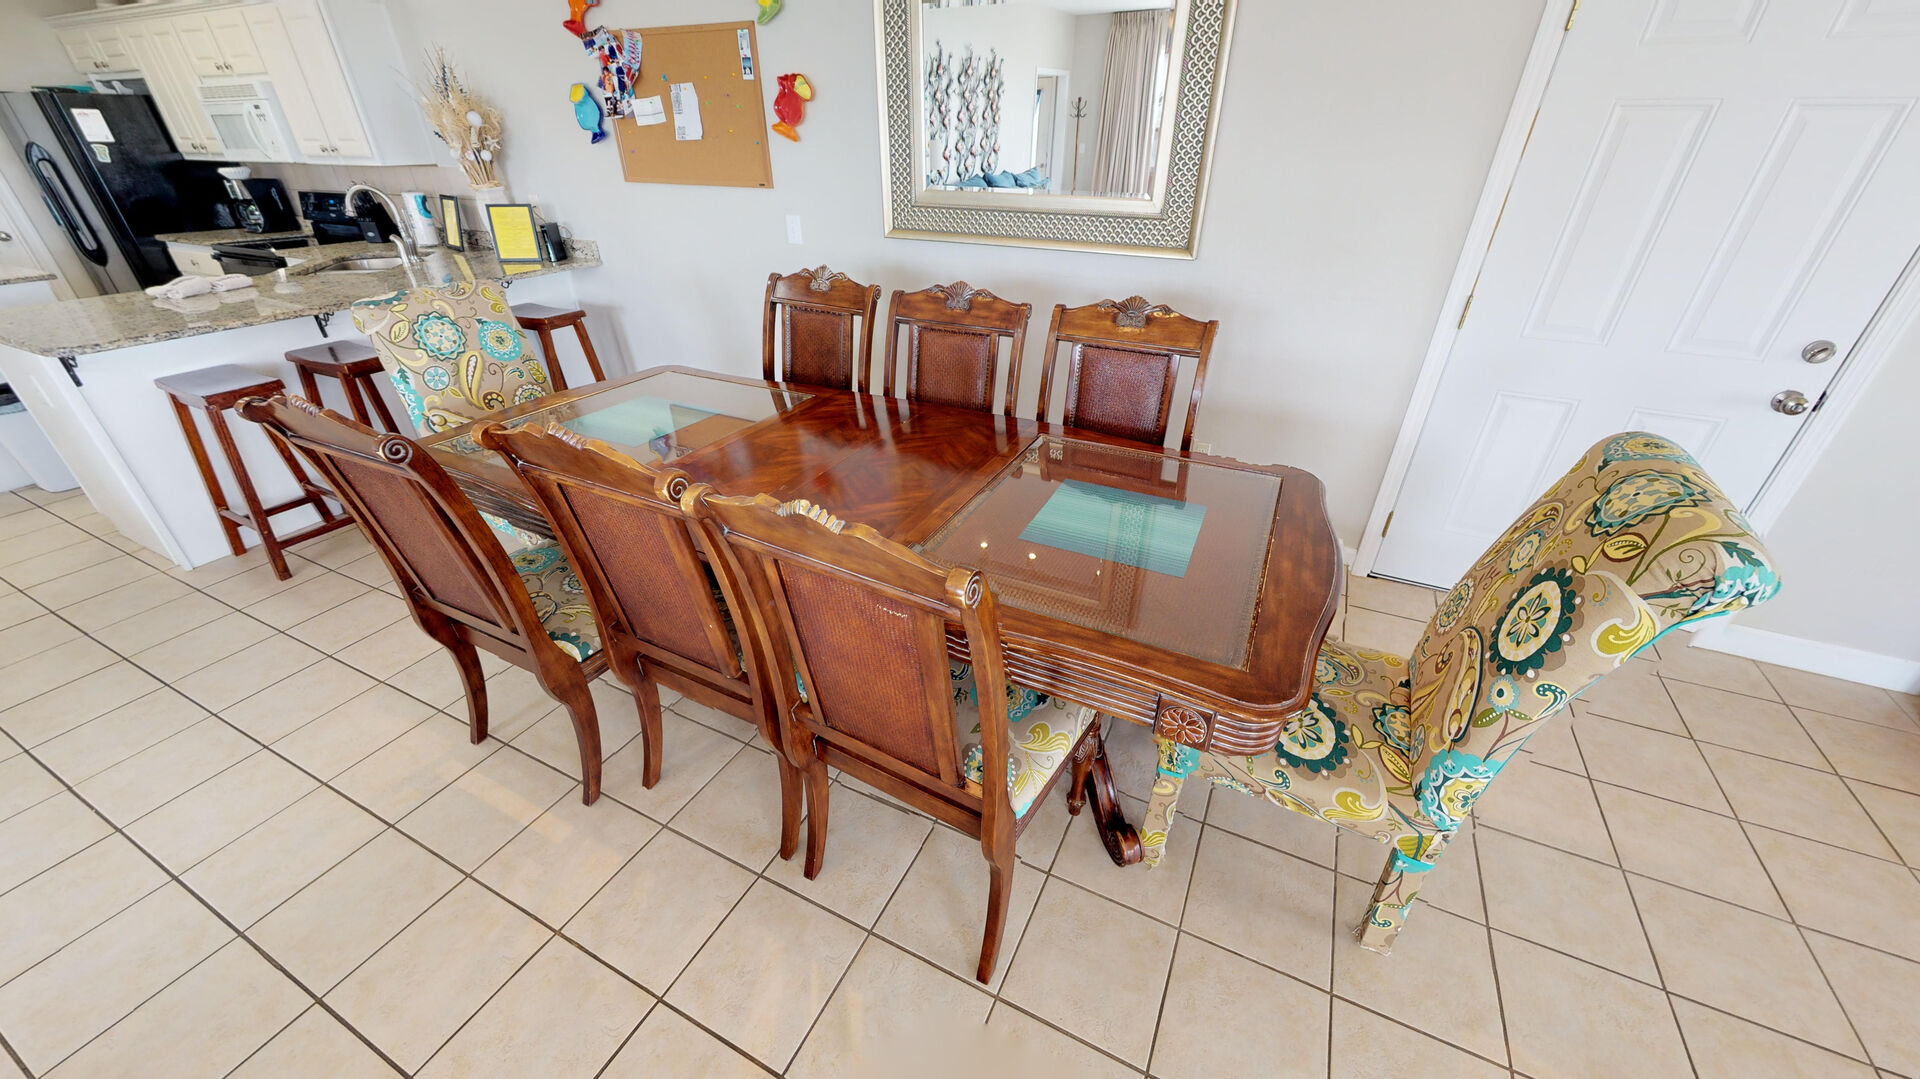 Dining Table Can Seat 8 Guests.